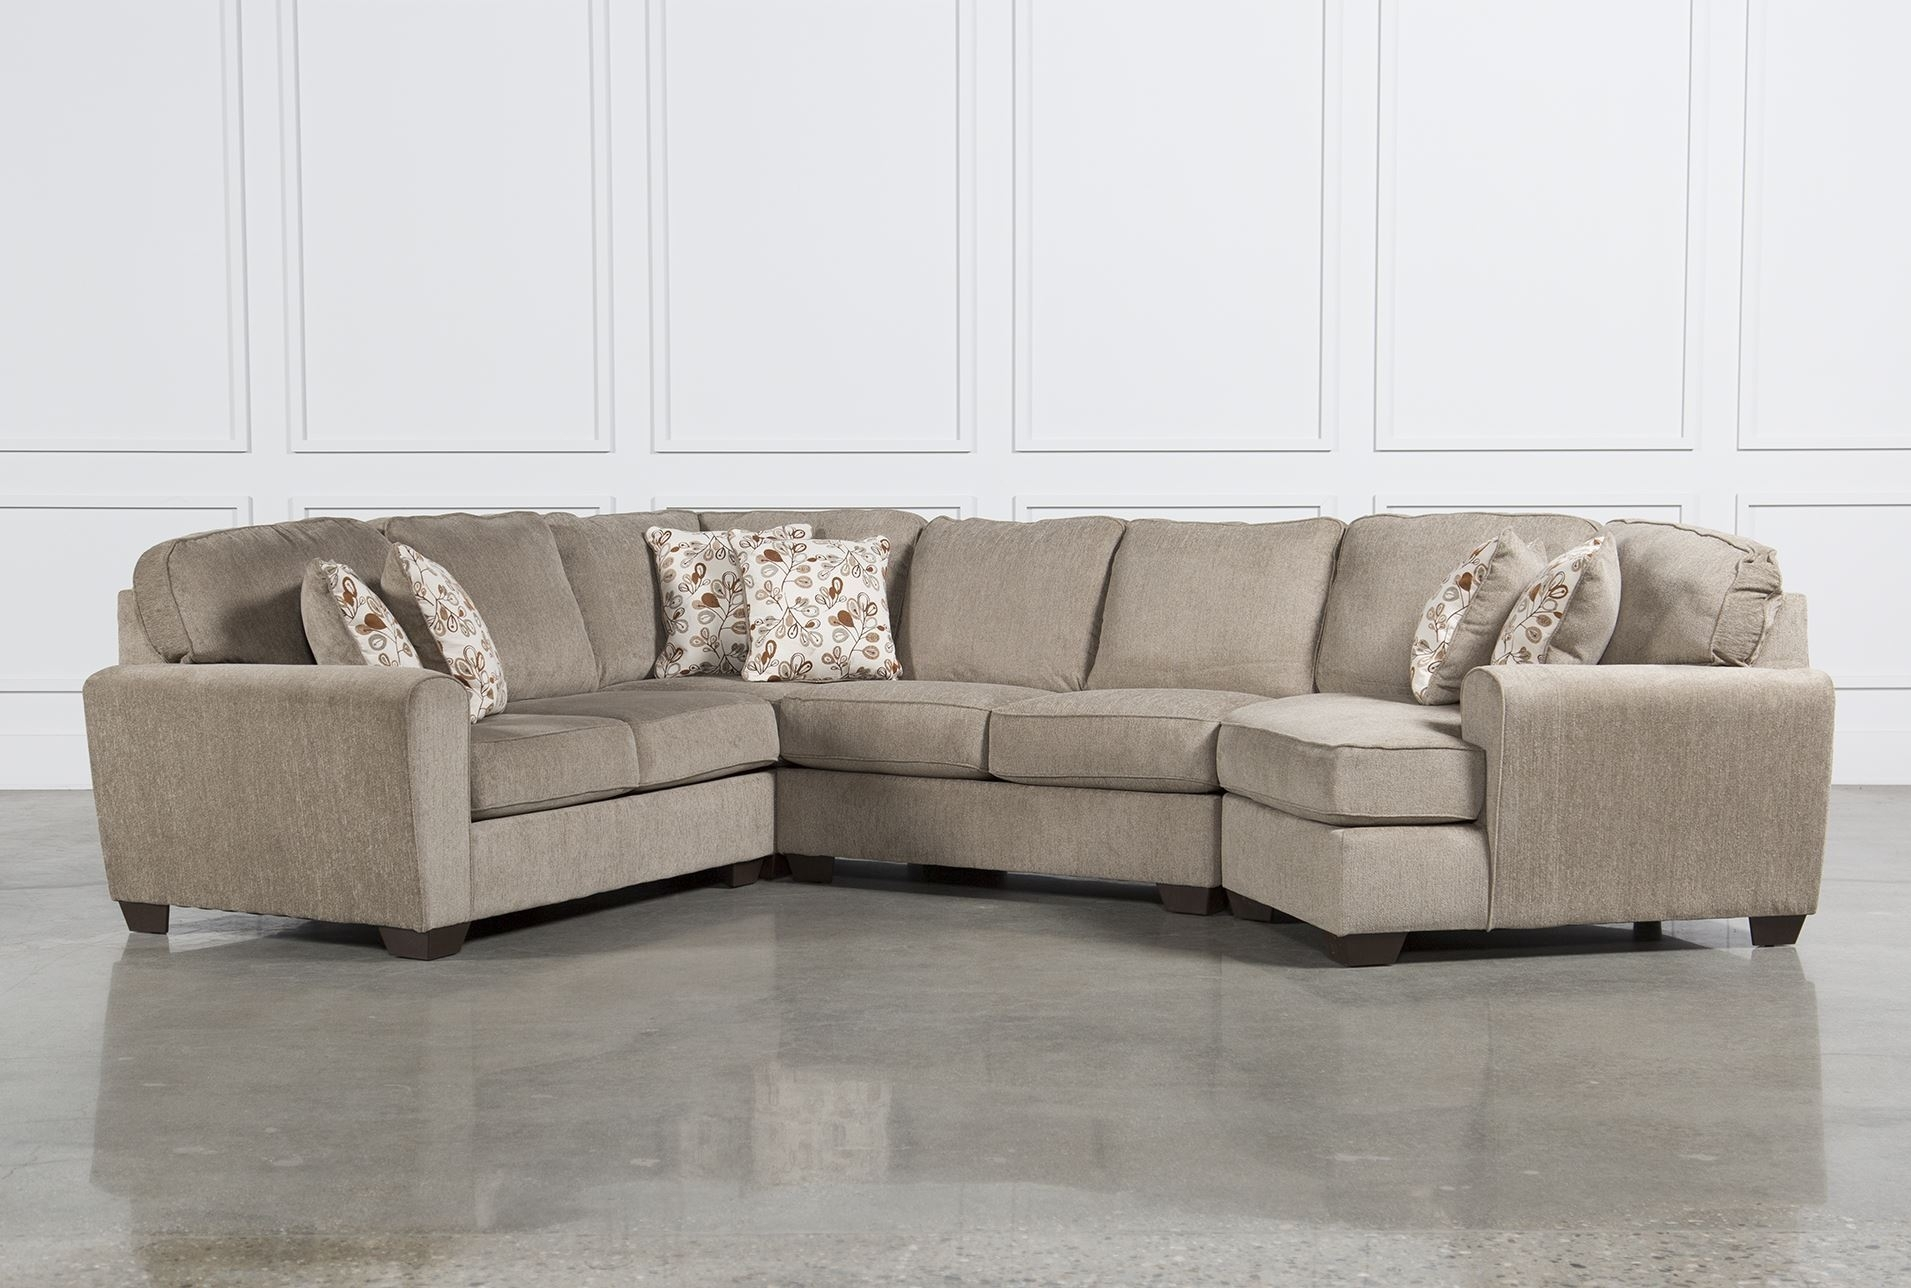 Corbin 3 Piece Sectional W Raf Chaise Ideas Of Living Spaces In Avery 2 Piece Sectionals With Raf Armless Chaise (Image 9 of 25)